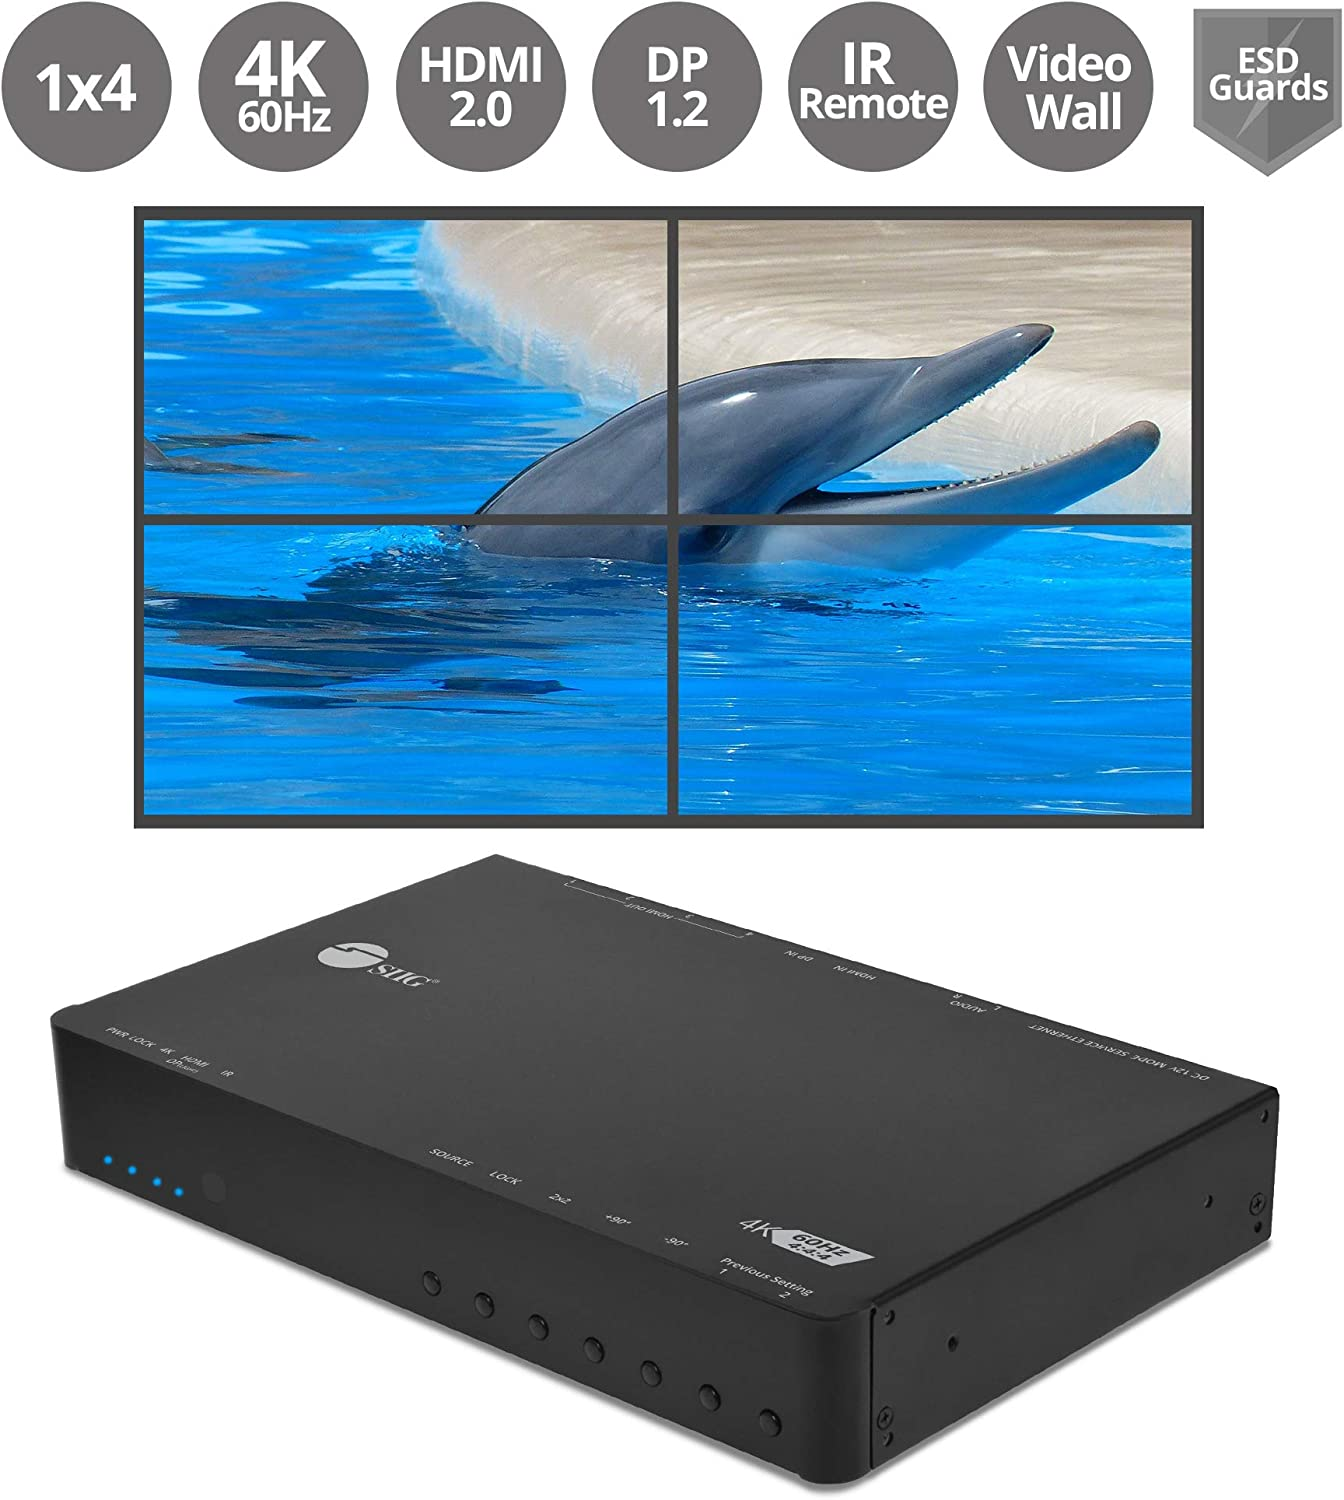 SIIG 4K HDMI 2x2 Video Wall Controller & Processor – Up to 4K/60Hz YUV 4:4:4, 1x HDMI or Mini DisplayPort 1.2 Input- with Bezel Correction, Cascading, Supports 1x1, 2x2, 1x3,1x4 (CE-H23J11-S1)